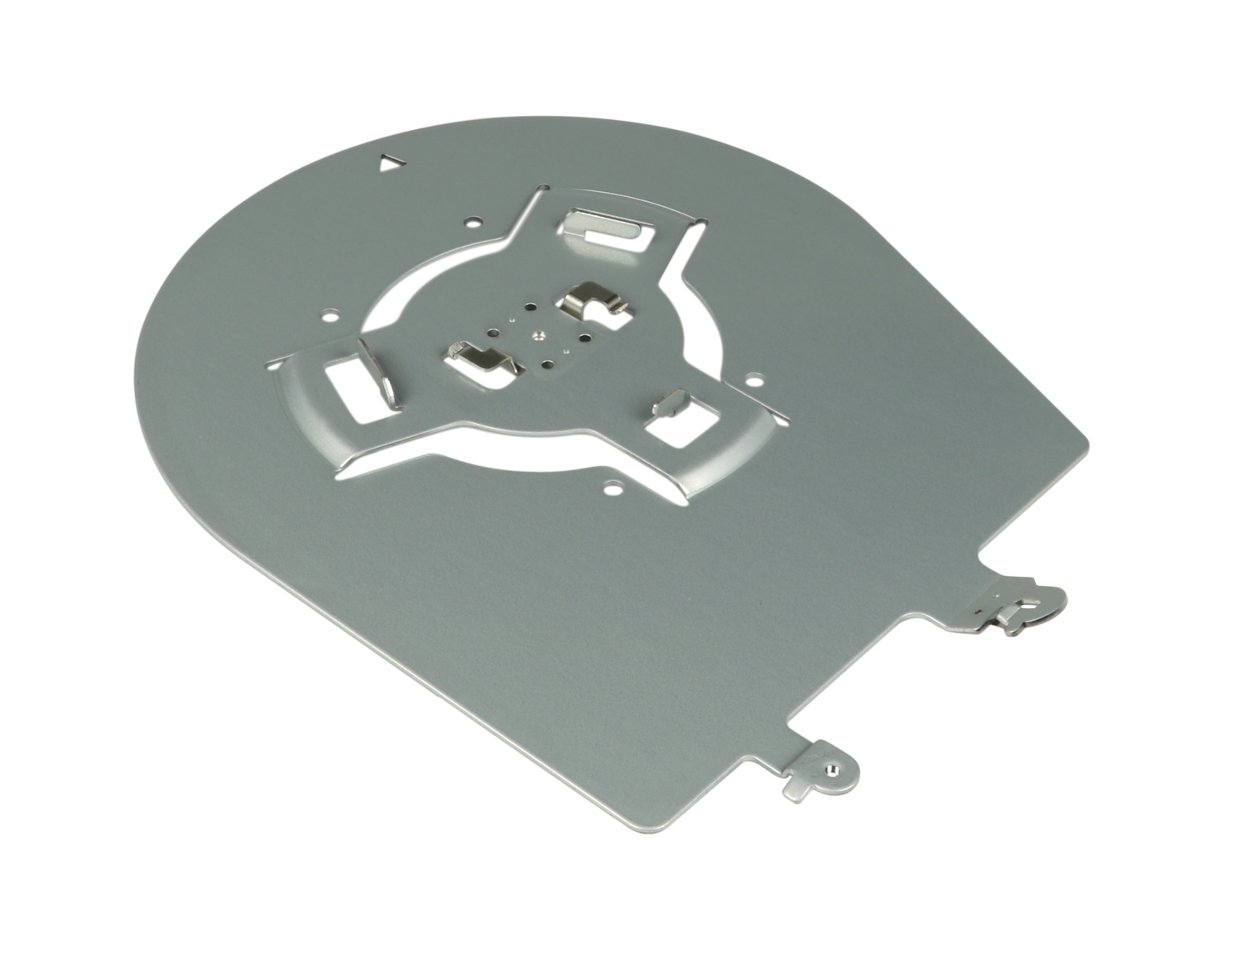 Mounting Plate for AW-HE120